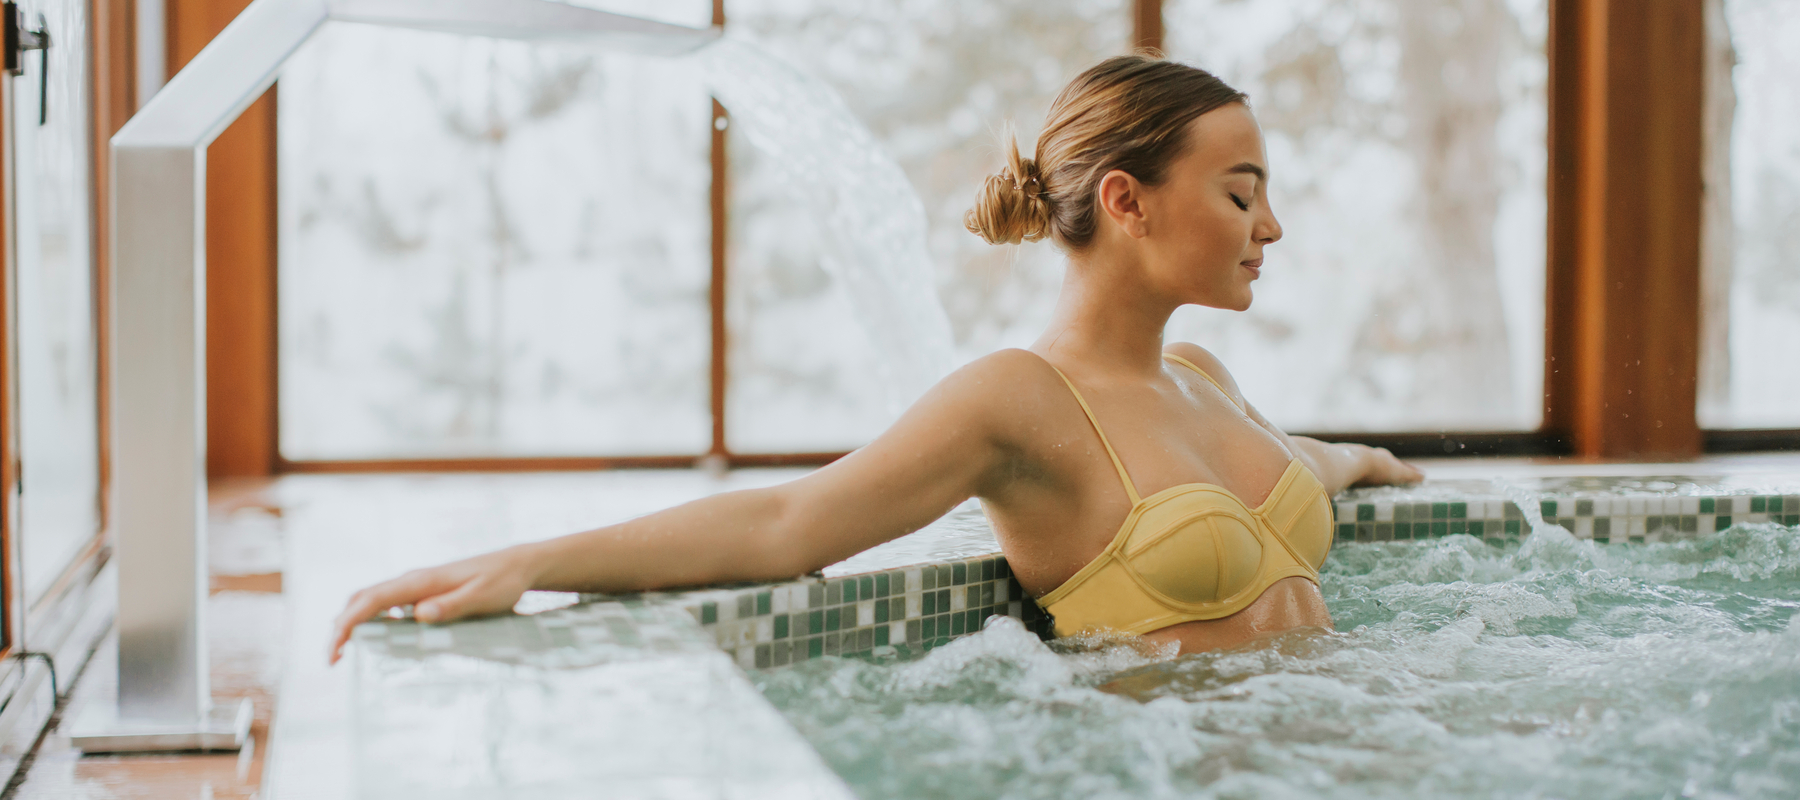 What You Need To Know Before Getting A Breast Lift